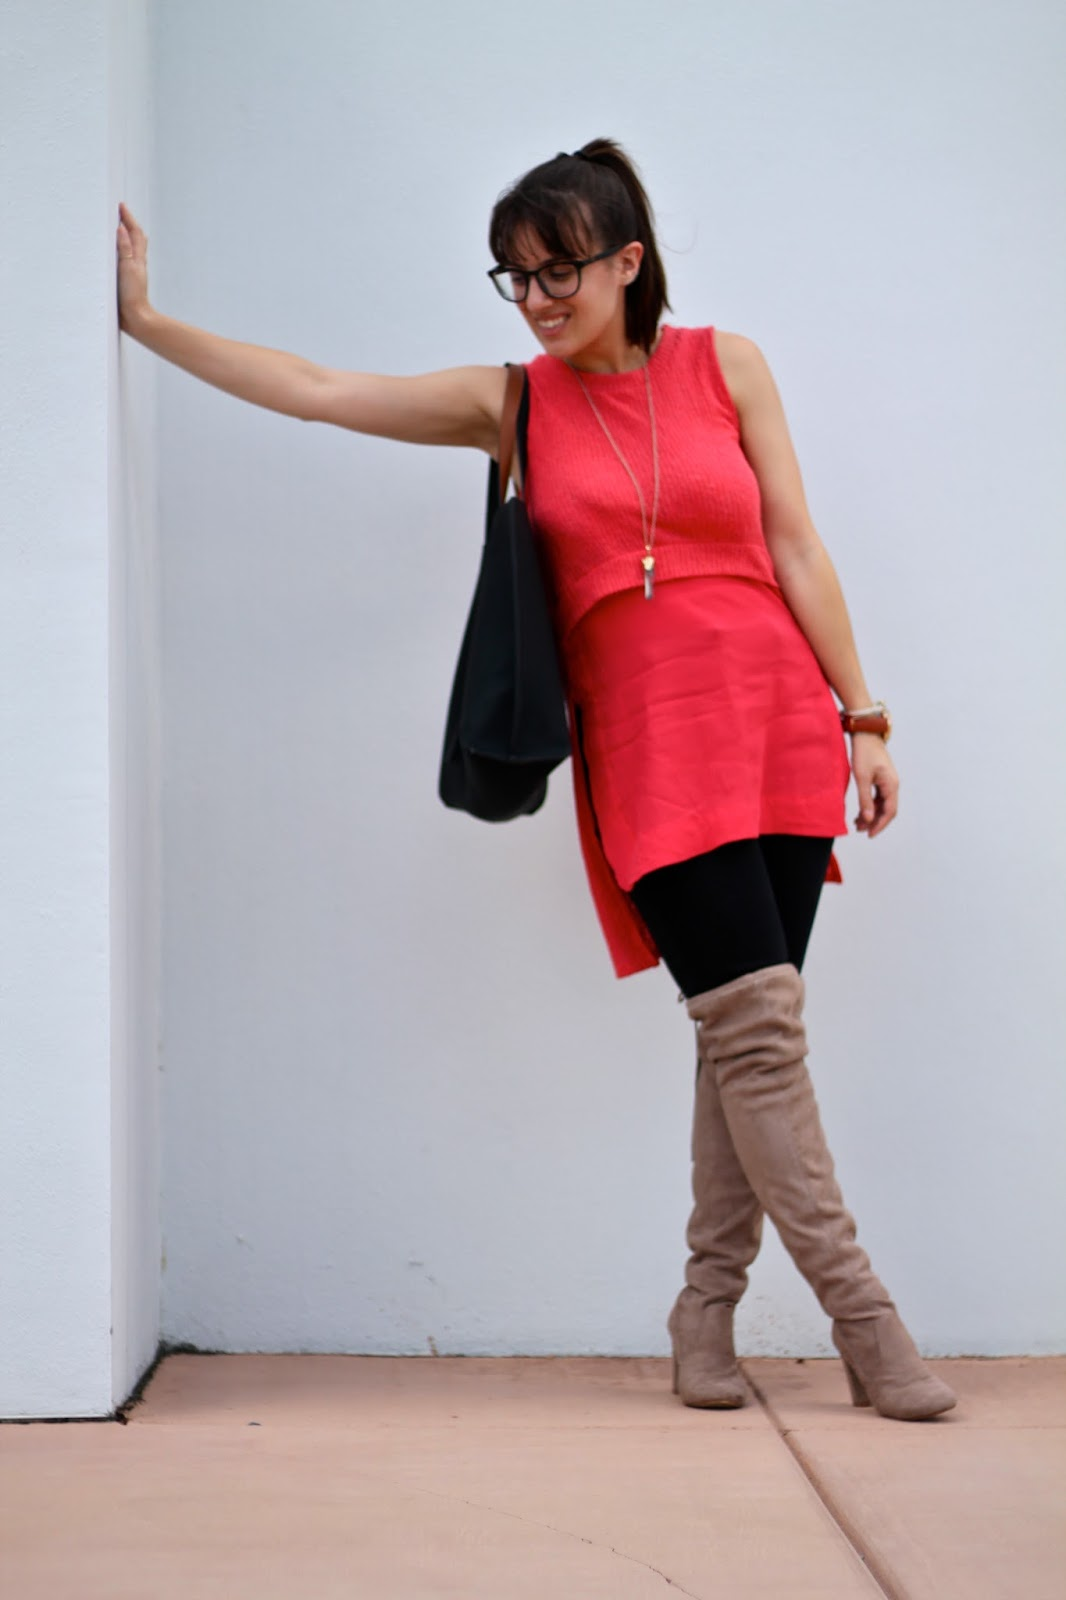 over the knee boots, fall fashion, fall style, Miami blogger, miami fashion, miami style, New York fashion, New York style, fblogger, ootd, look book, outfit ideas, Warby Parker